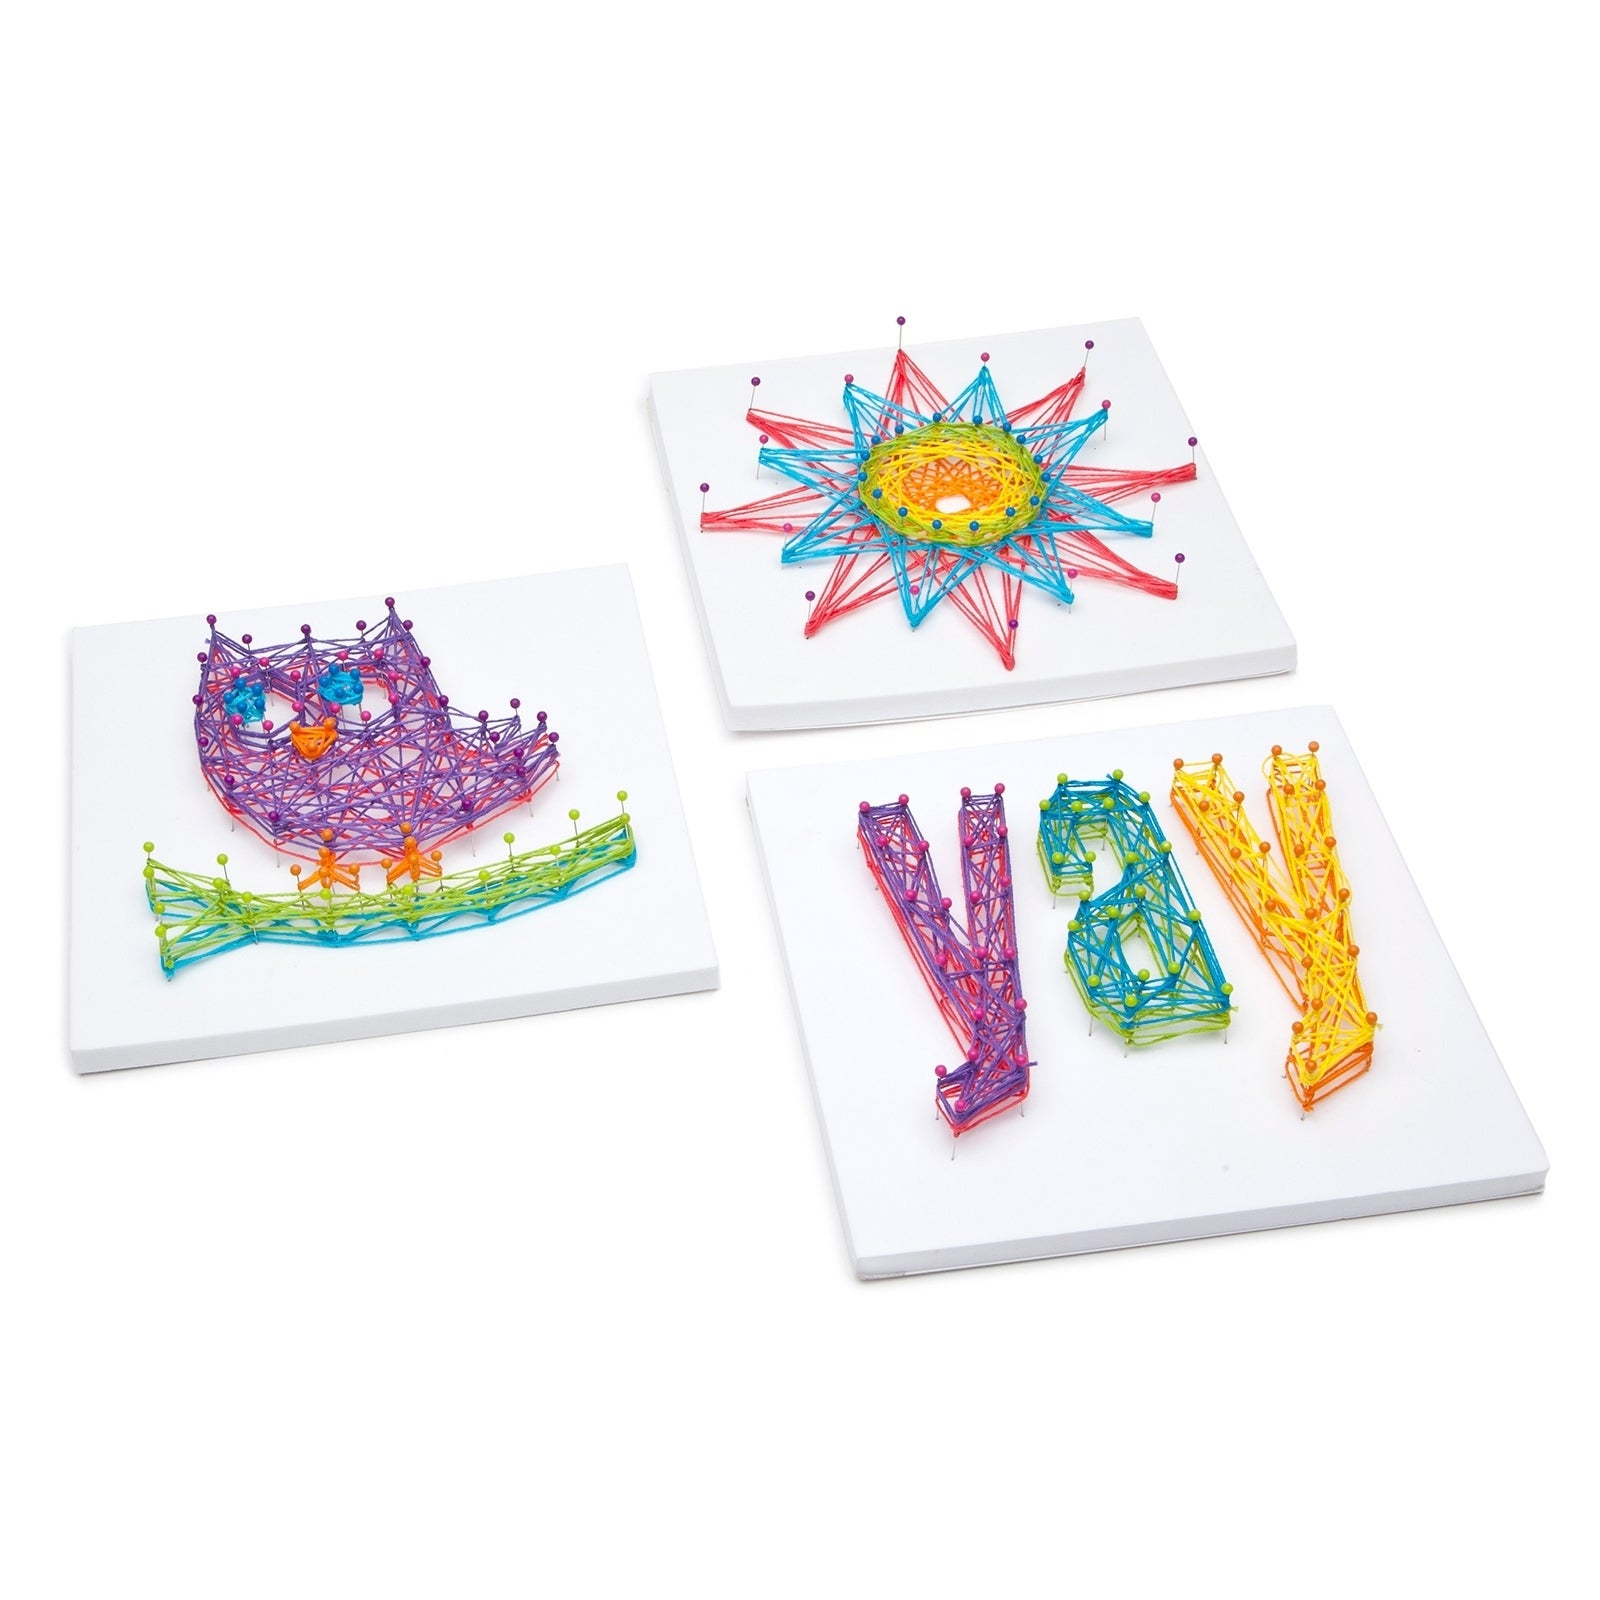 875db7c1f Shop Craft-tastic String Art Kit - Owl - Free Shipping On Orders Over $45 -  Overstock - 22577664